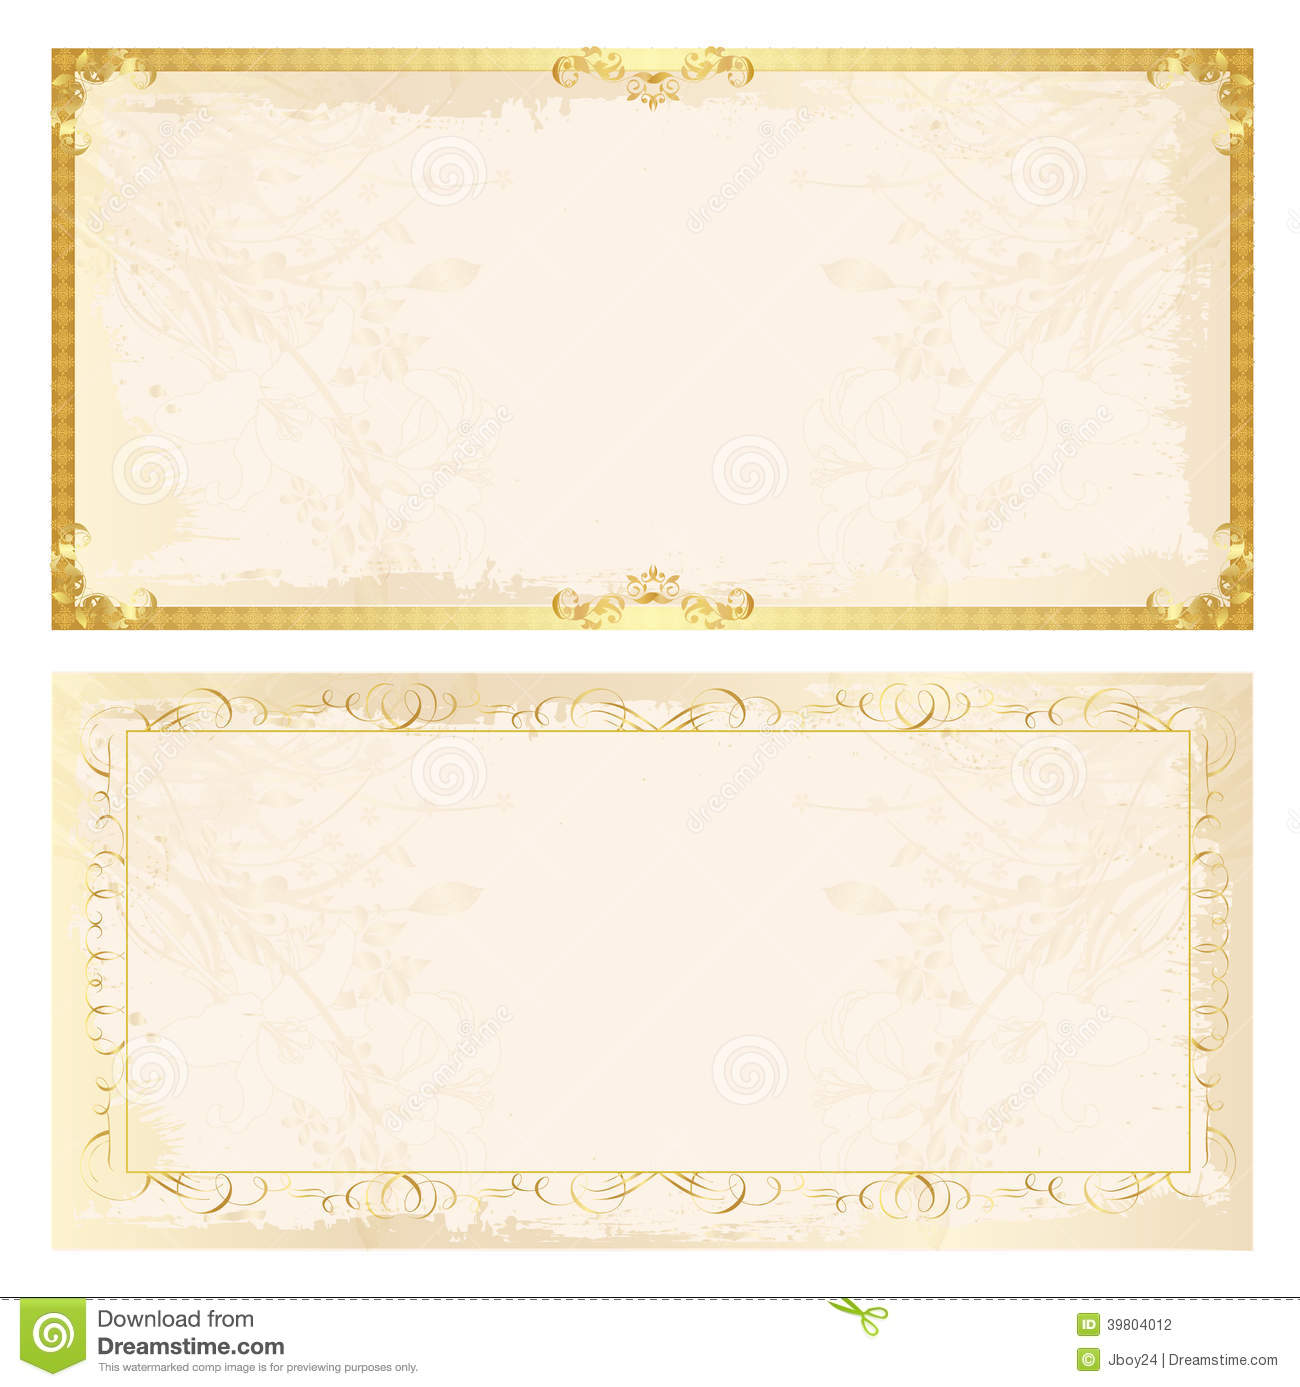 Certificate Frame Background Stock Vector - Image: 39804012